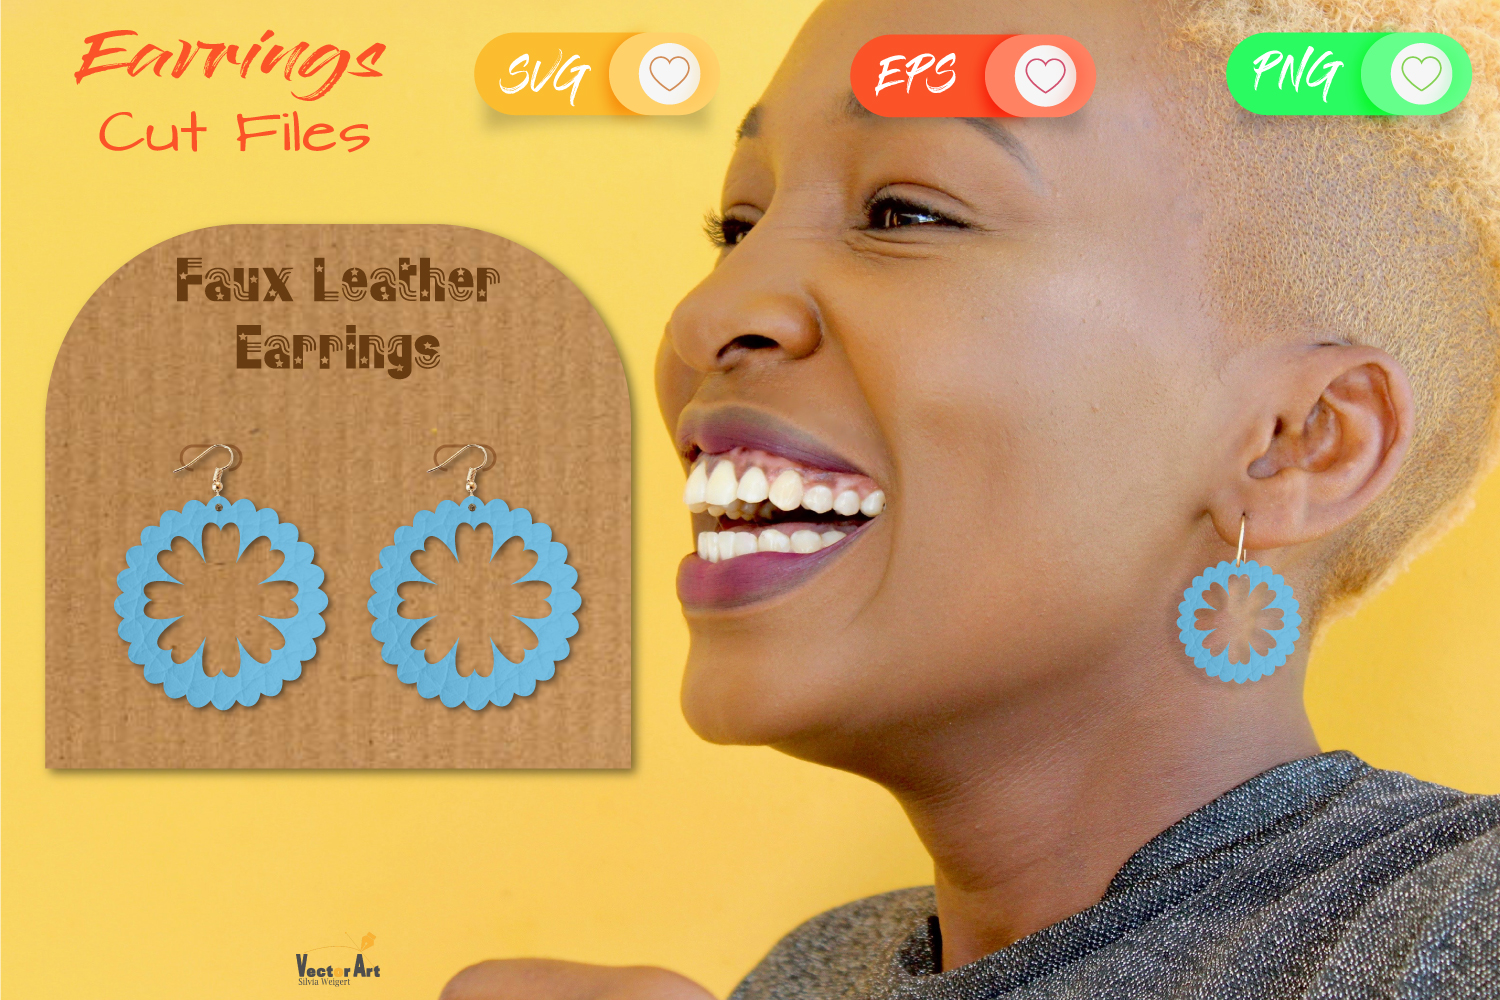 5 Earrings - Mini Bundle - Cut files example image 11